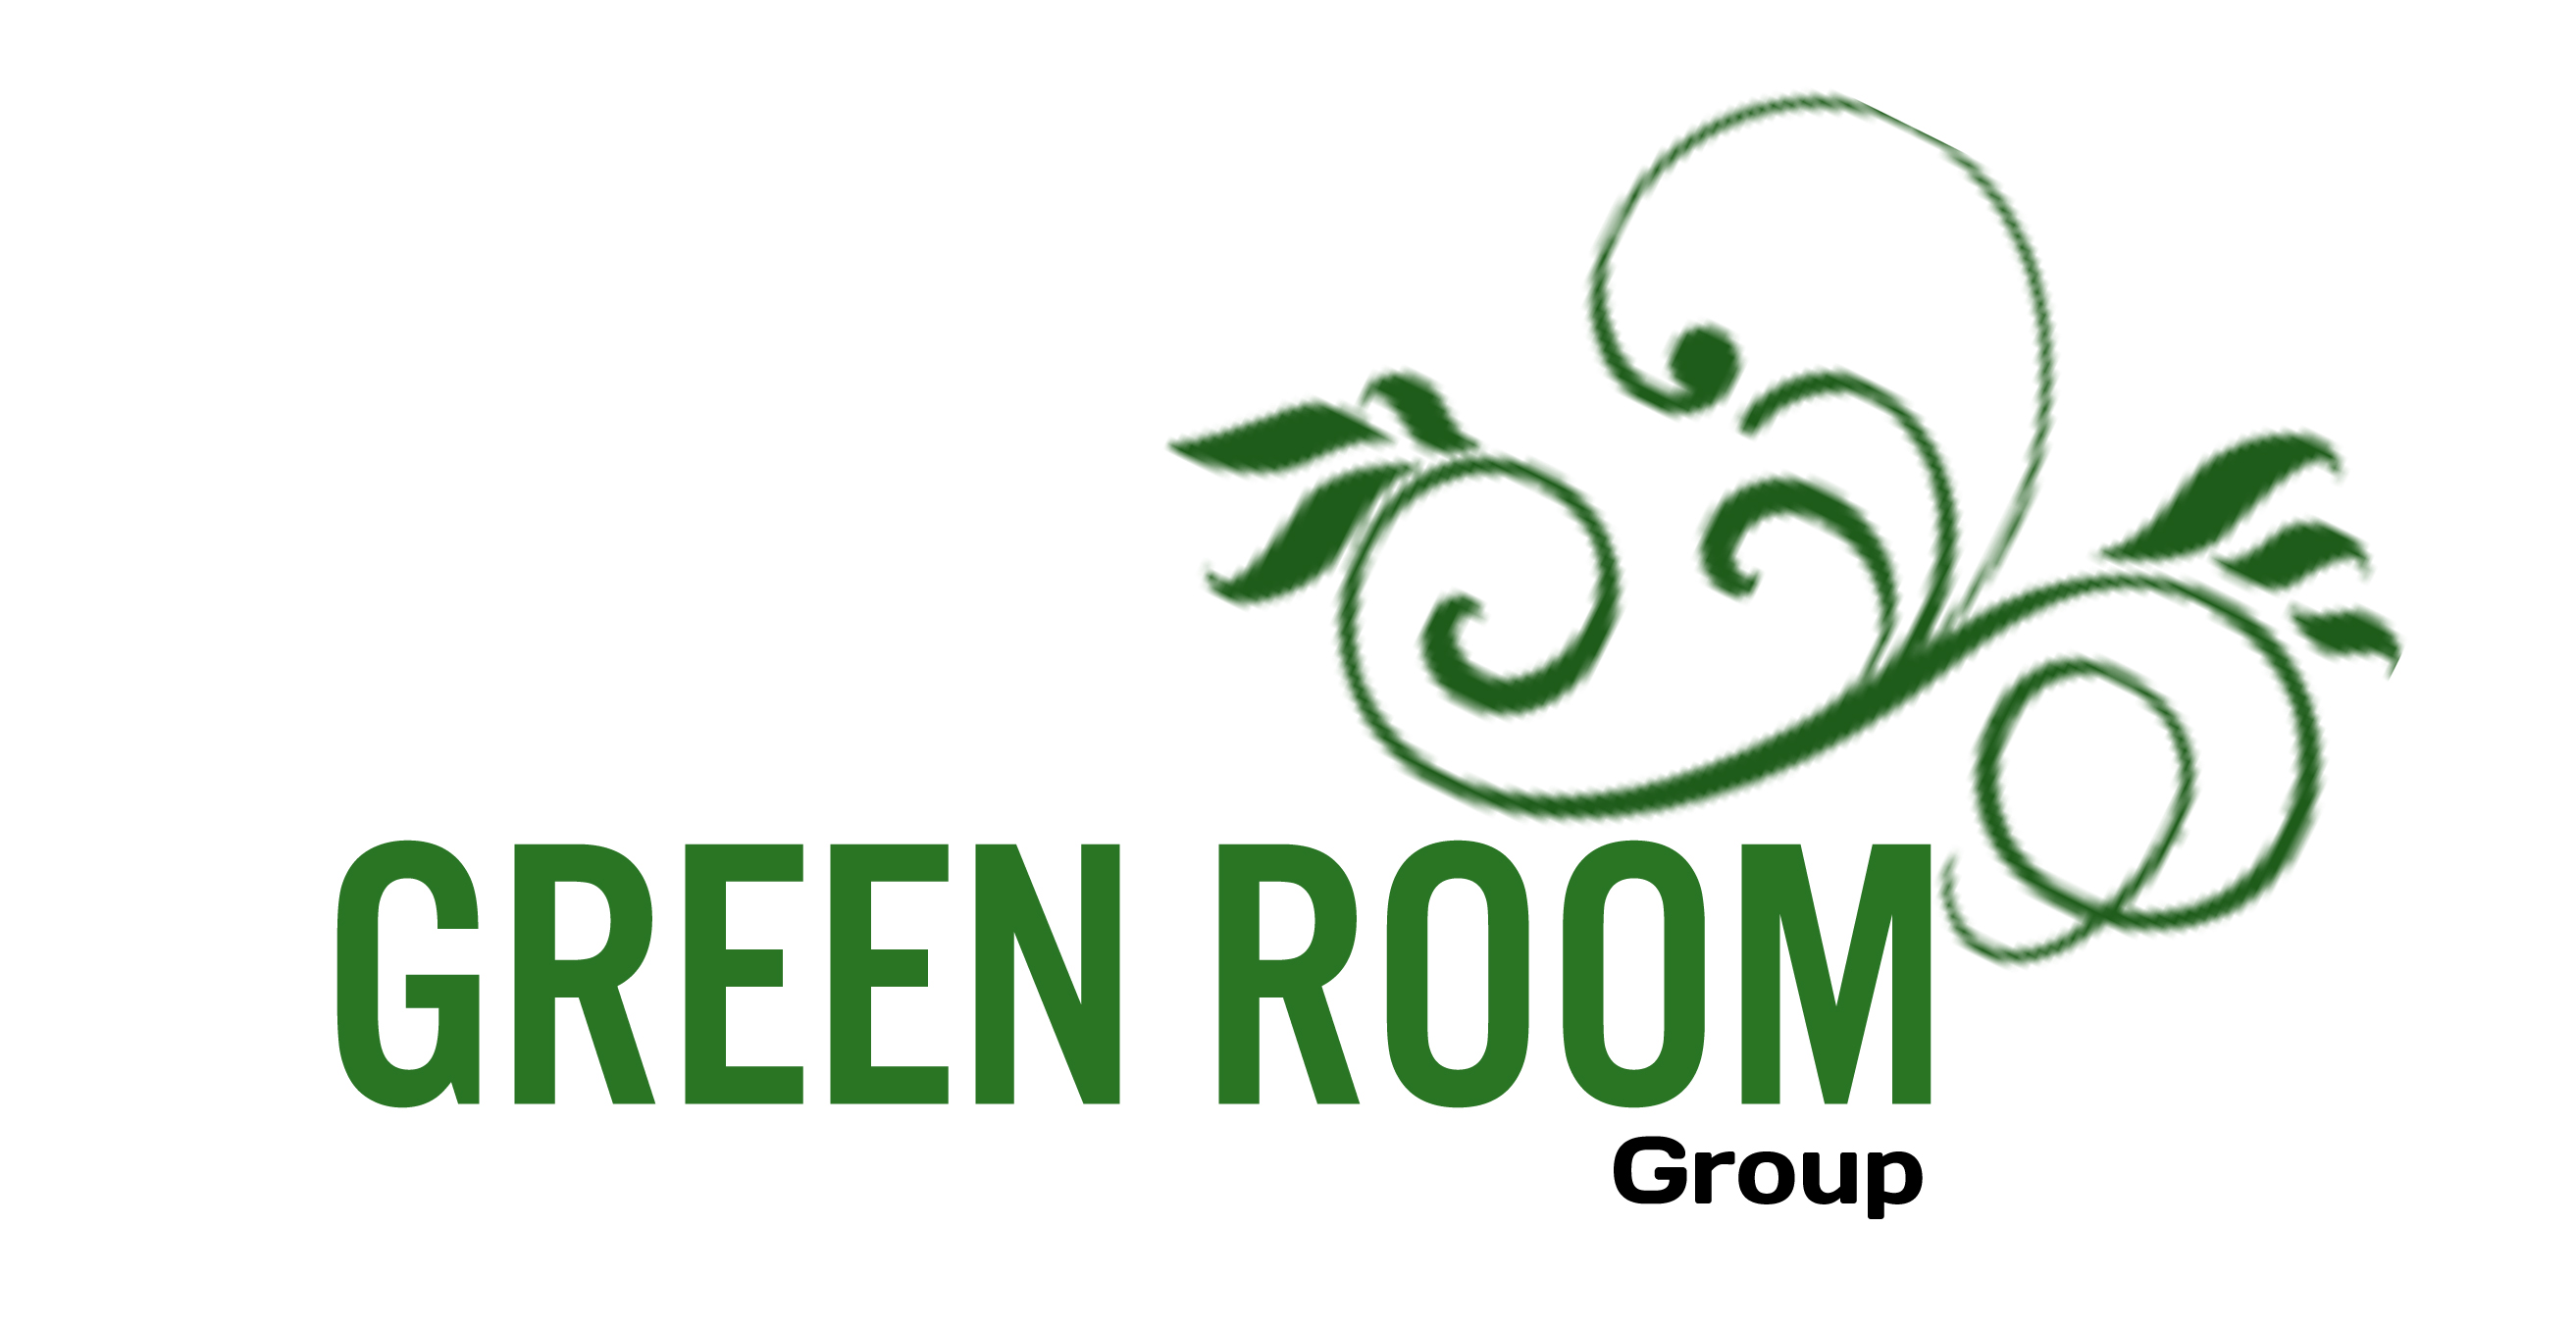 Green Room Group logo